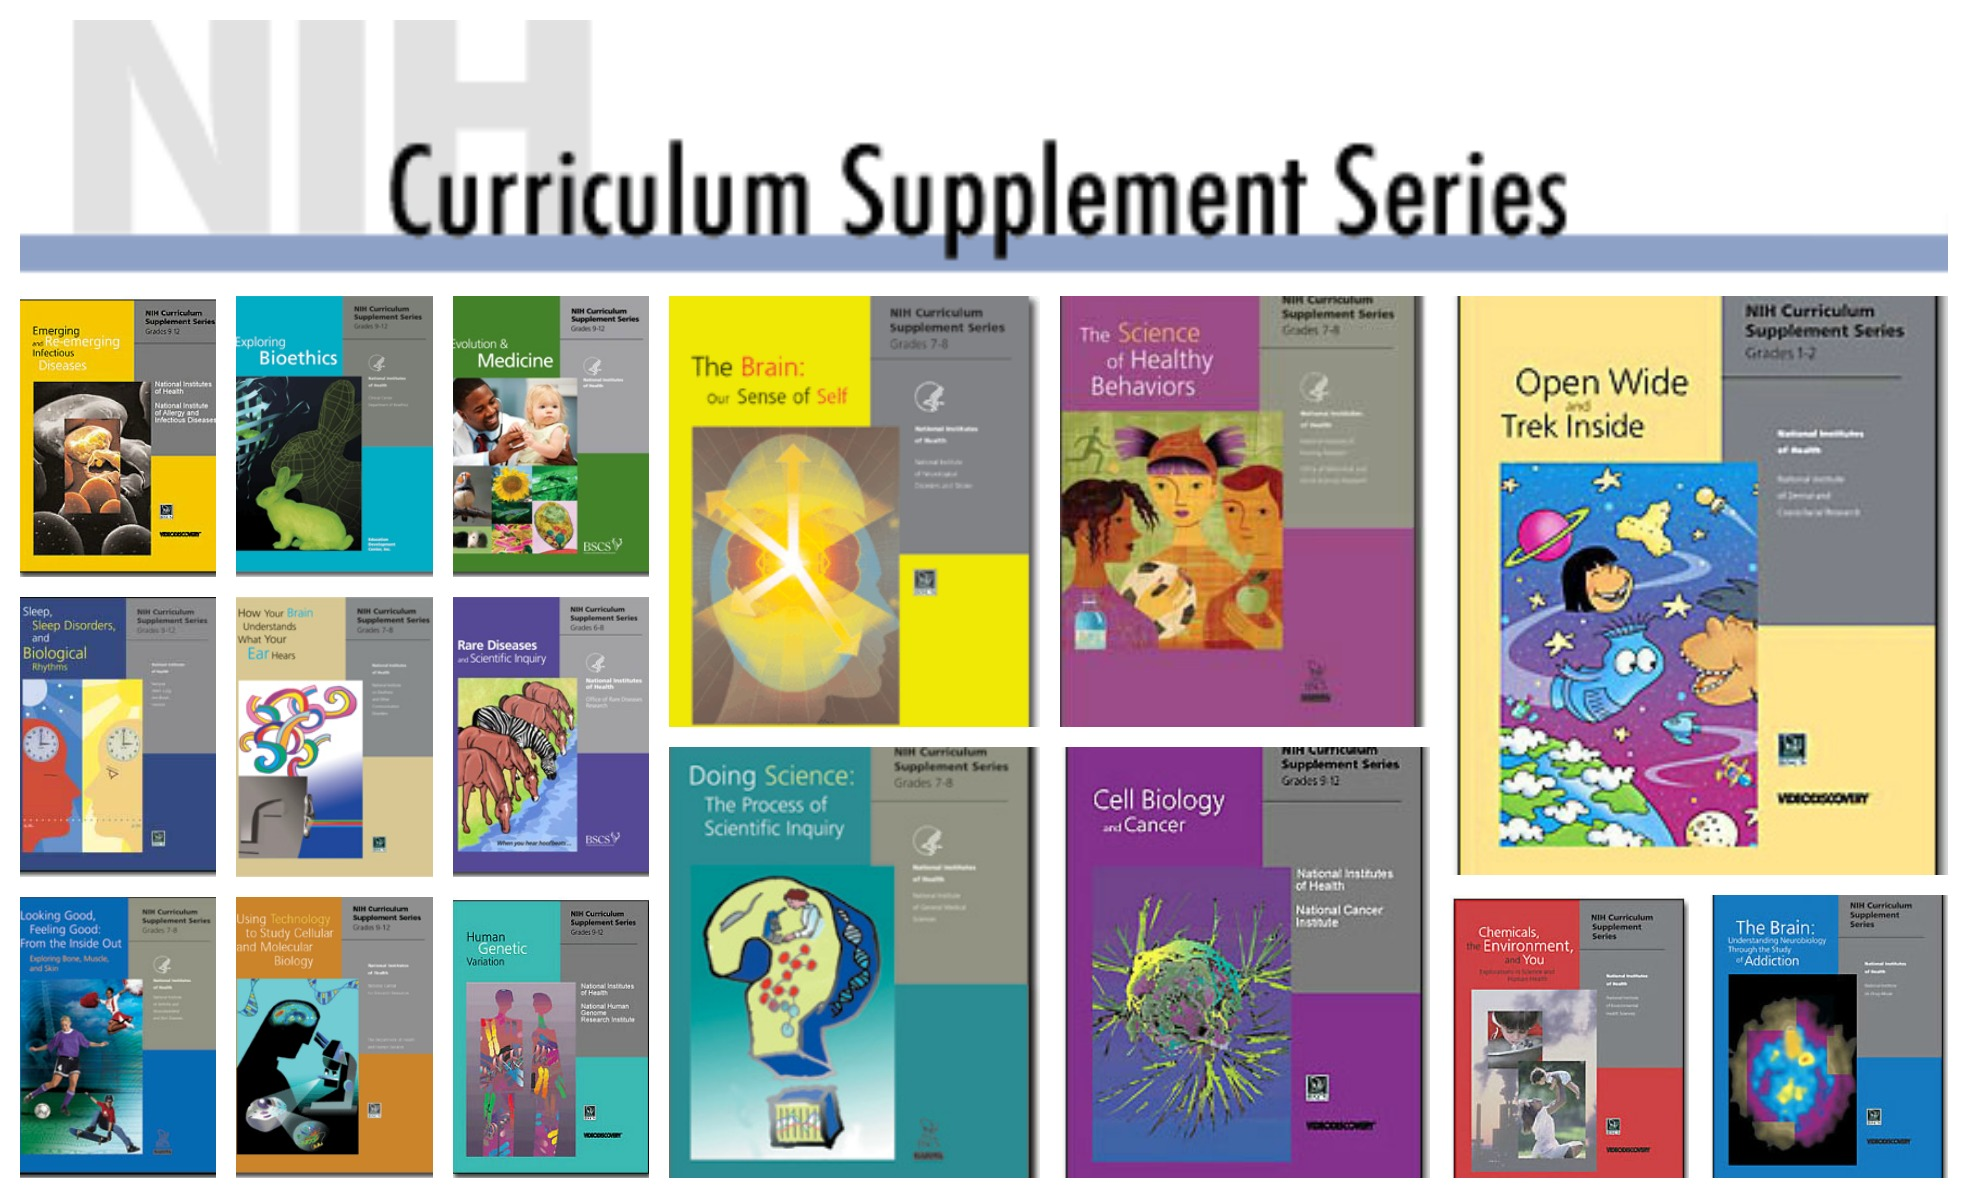 NIH offers science curricula FREE online or through the mail